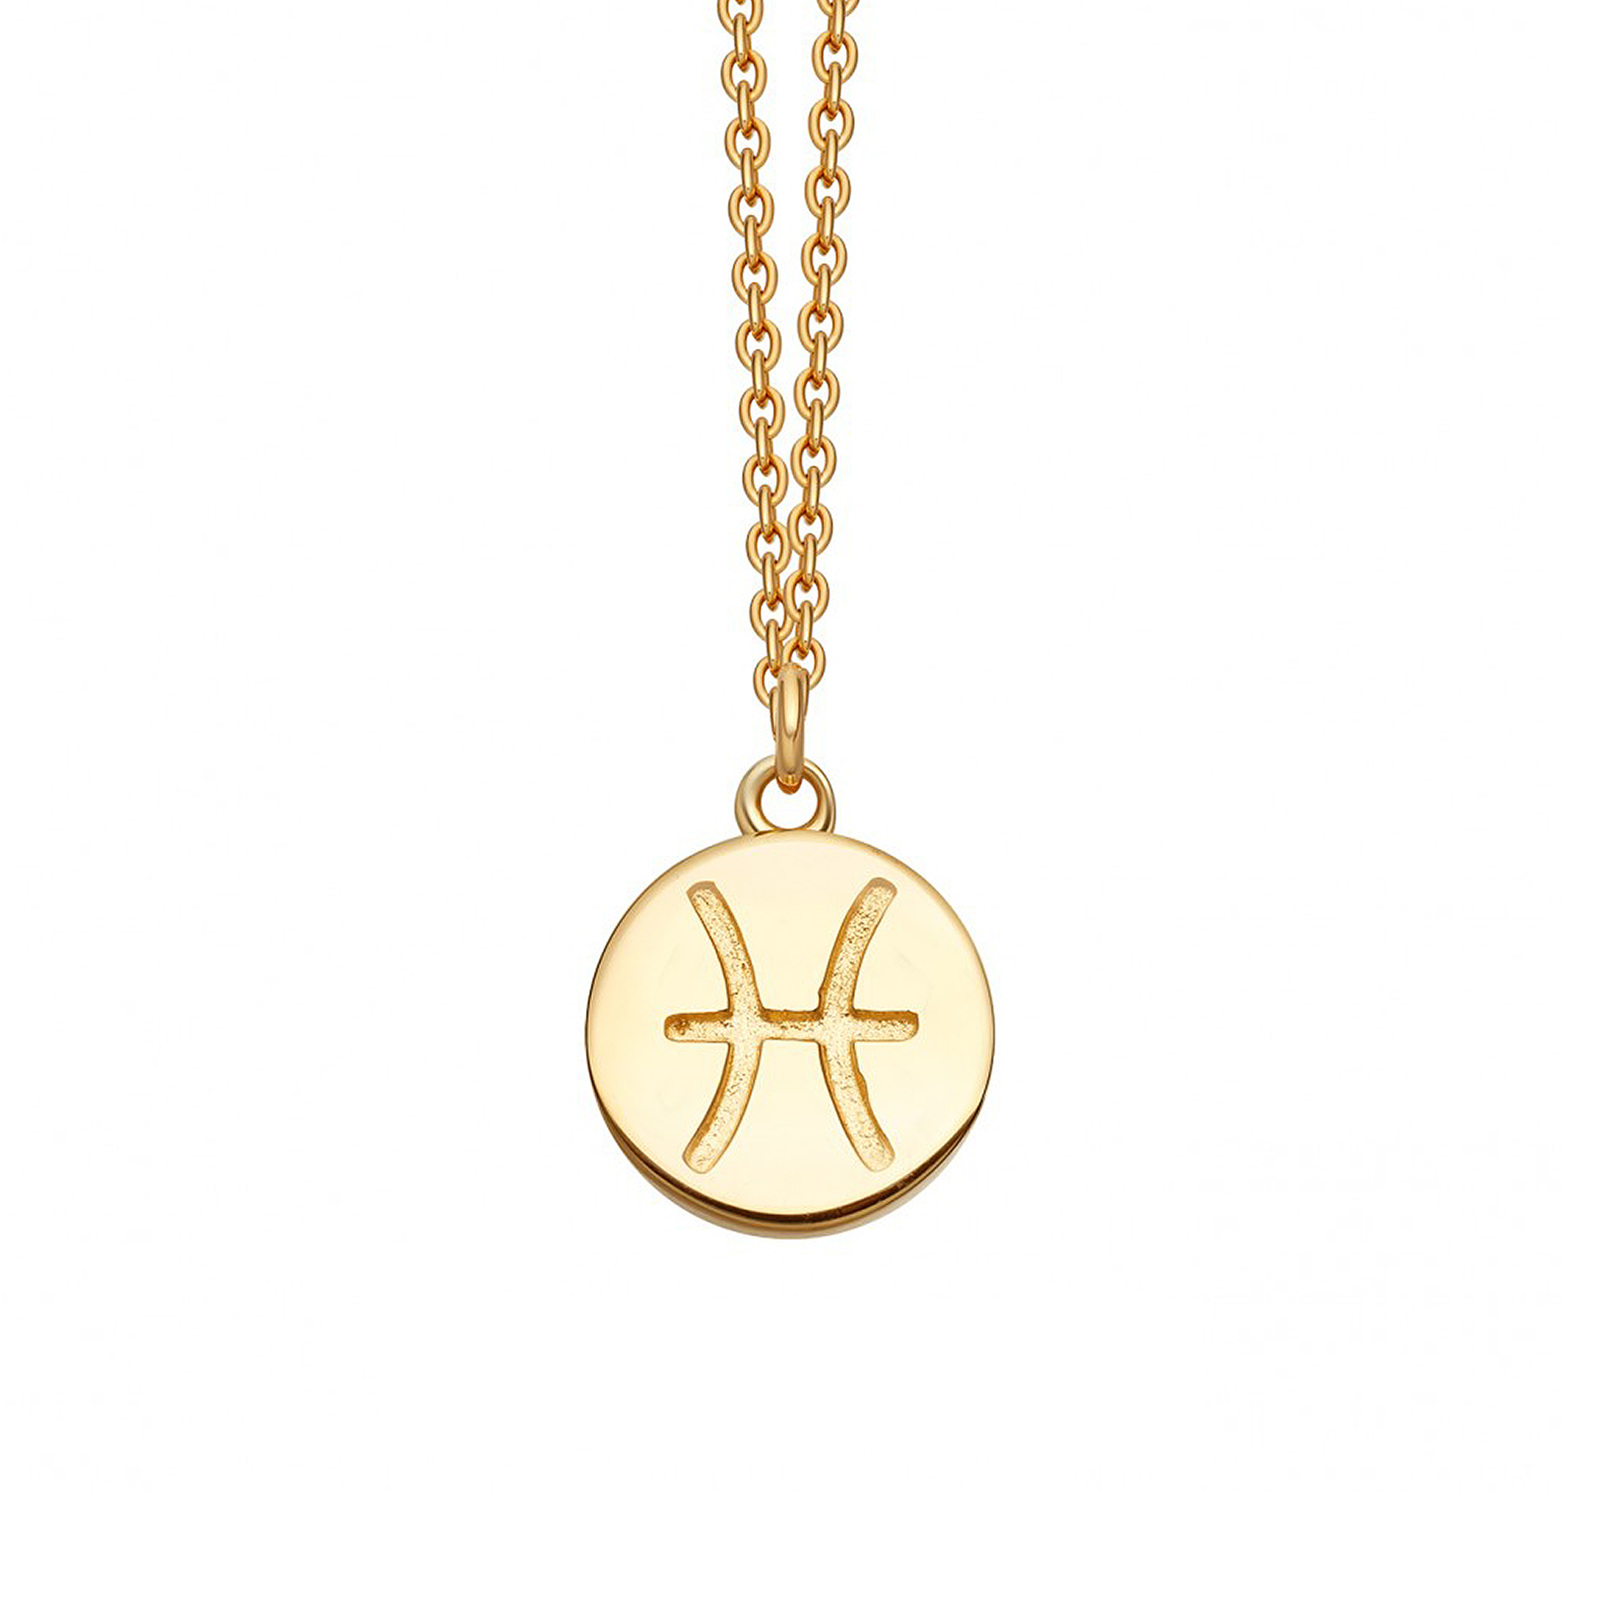 Astley clarke pisces zodiac biography pendant necklaces astley clarke pisces zodiac biography pendant biocorpaavc Choice Image